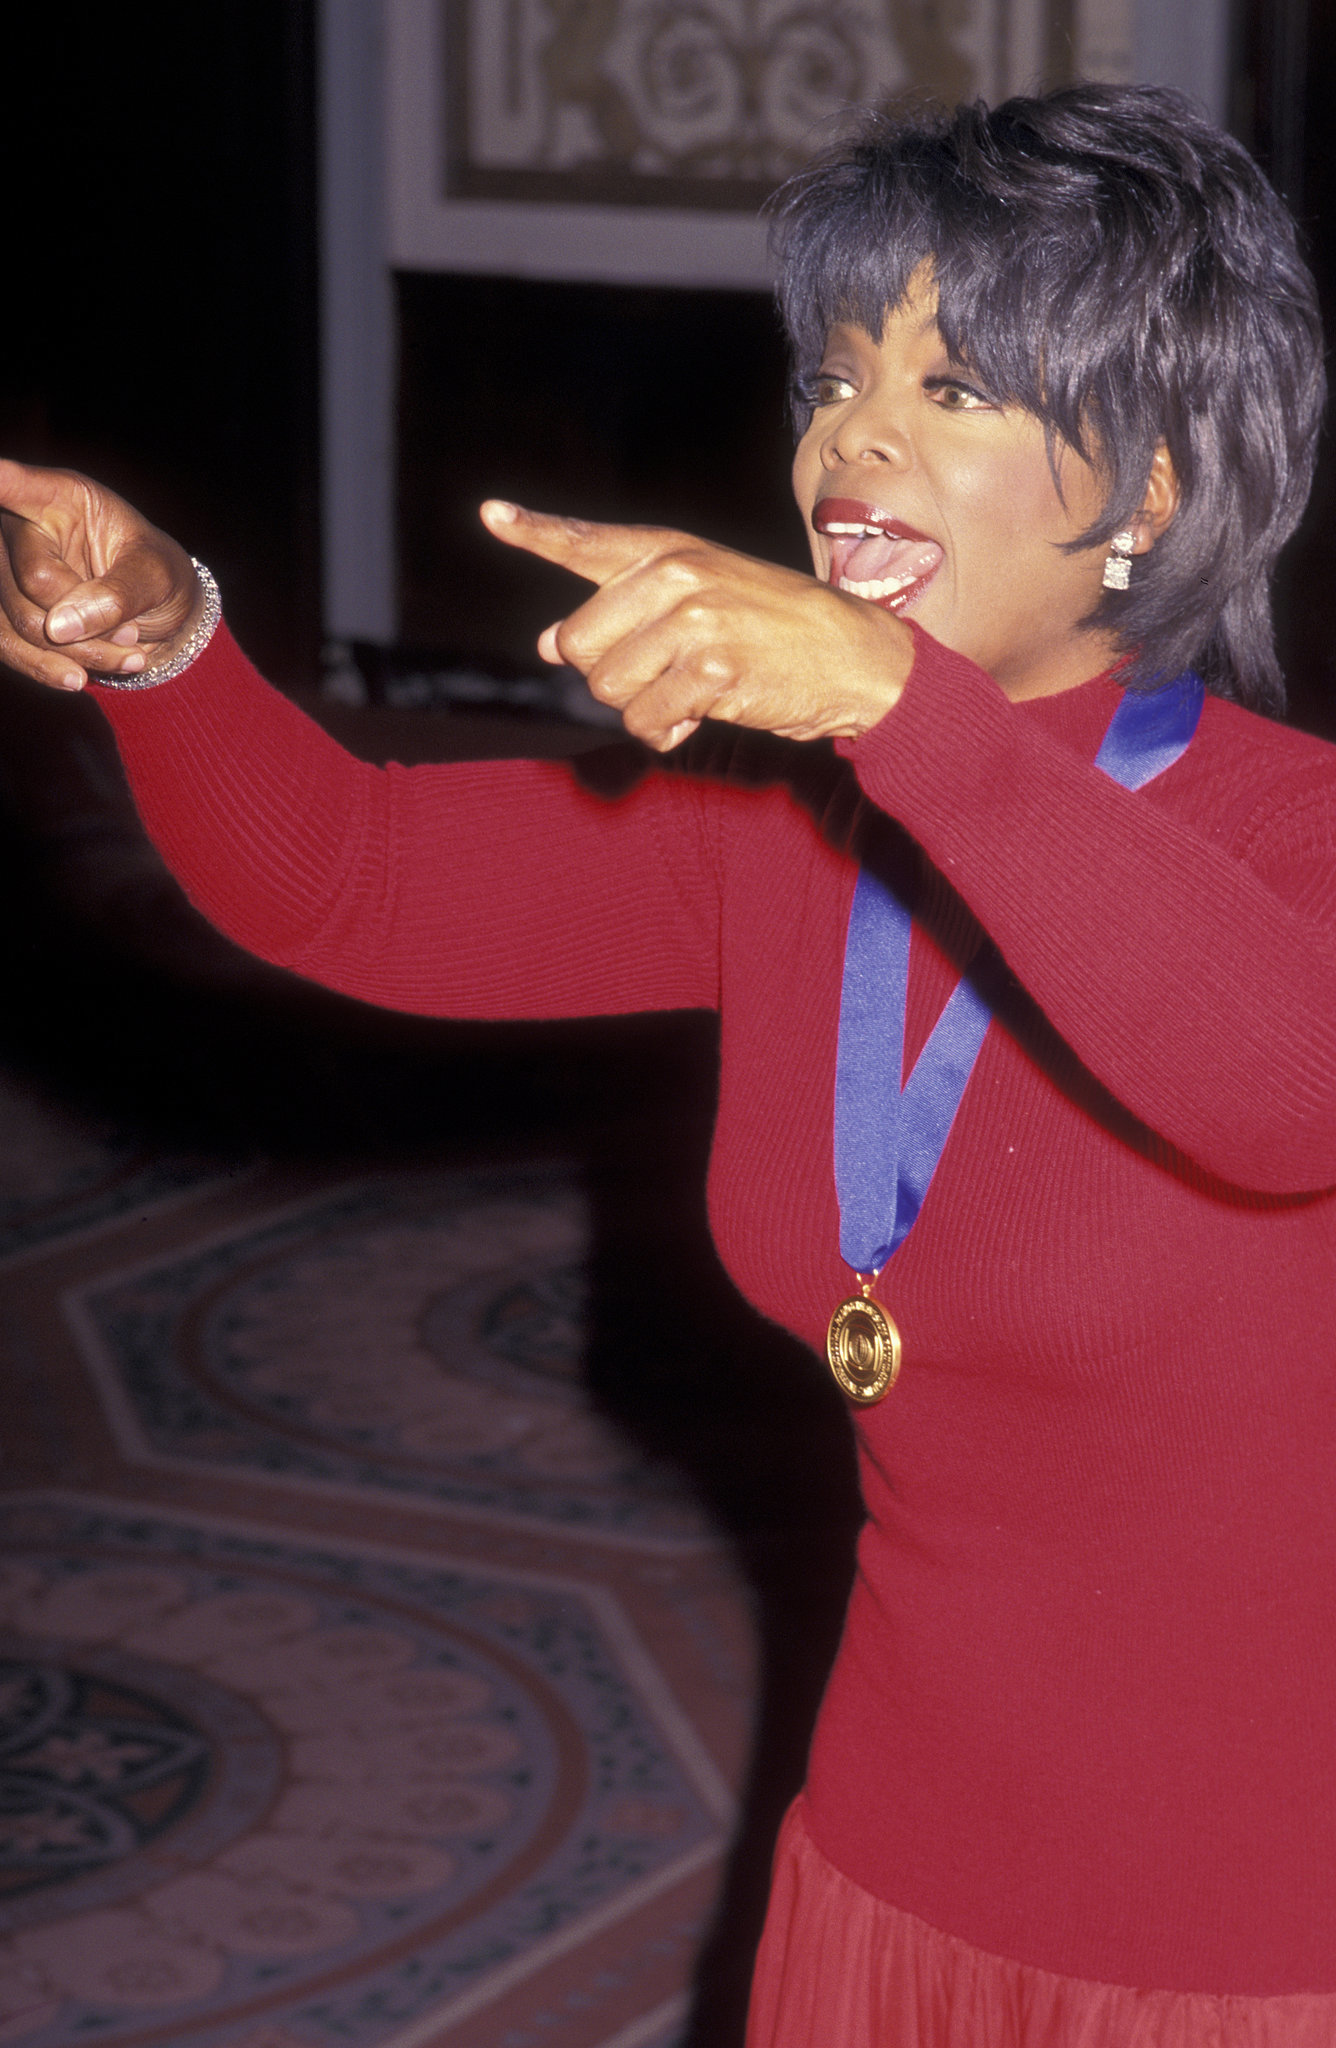 She was honored at the International Radio and Television Society Foundation Gold Medal Awards in 1996.